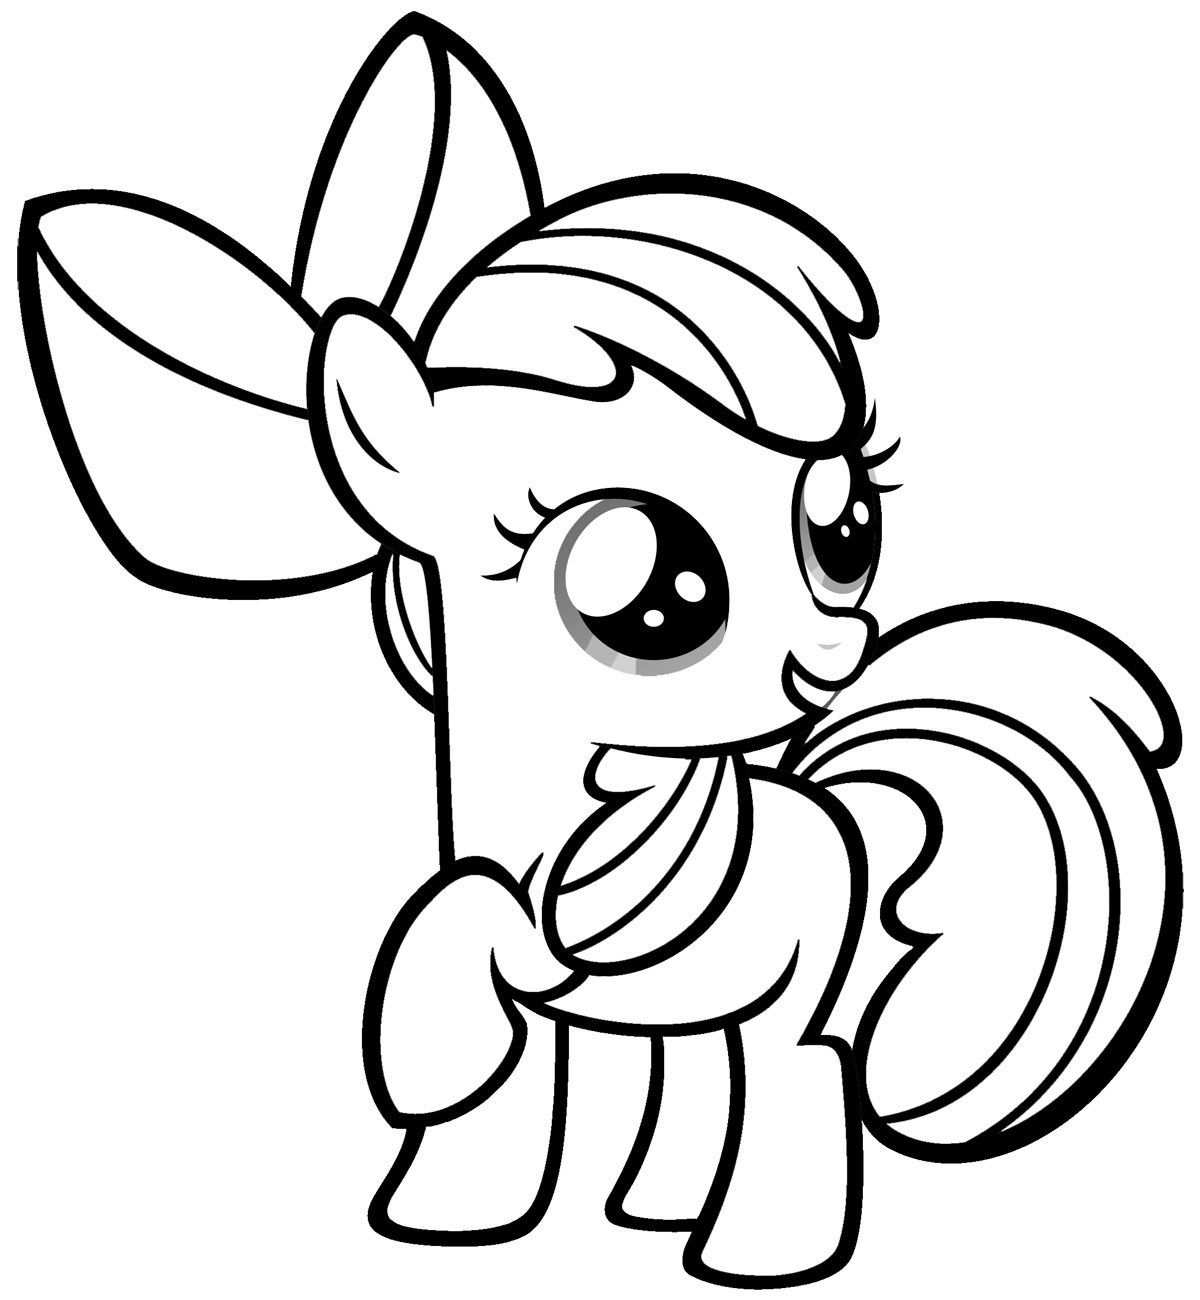 Fabulous image within pony printable coloring pages